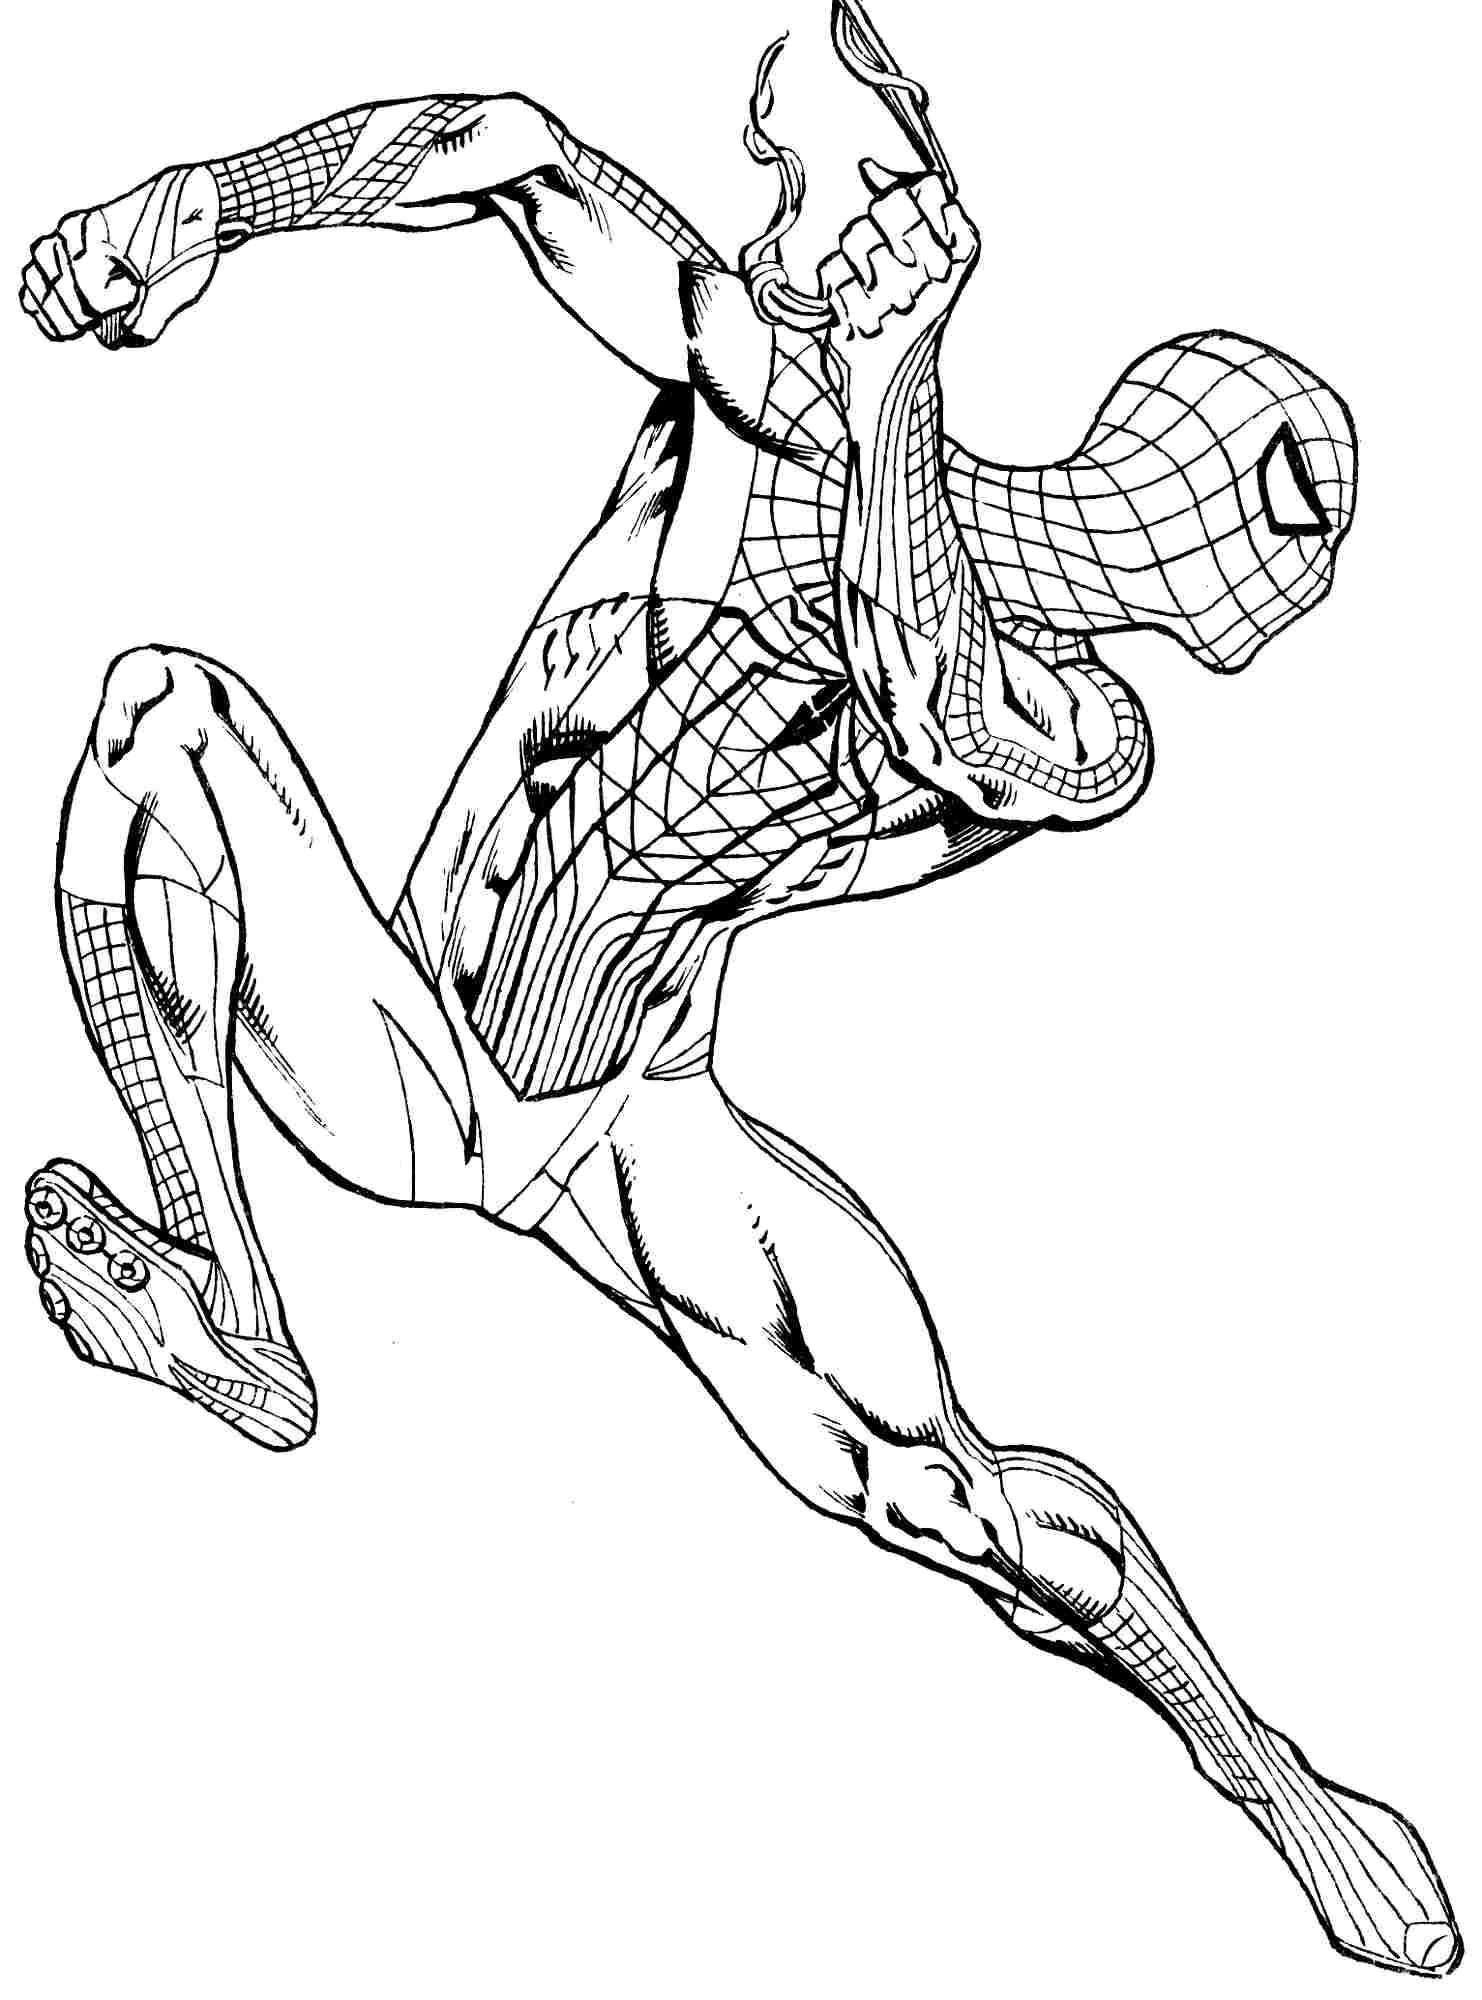 Black spiderman coloring pages games ~ Superman Drawing | Free download best Superman Drawing on ...